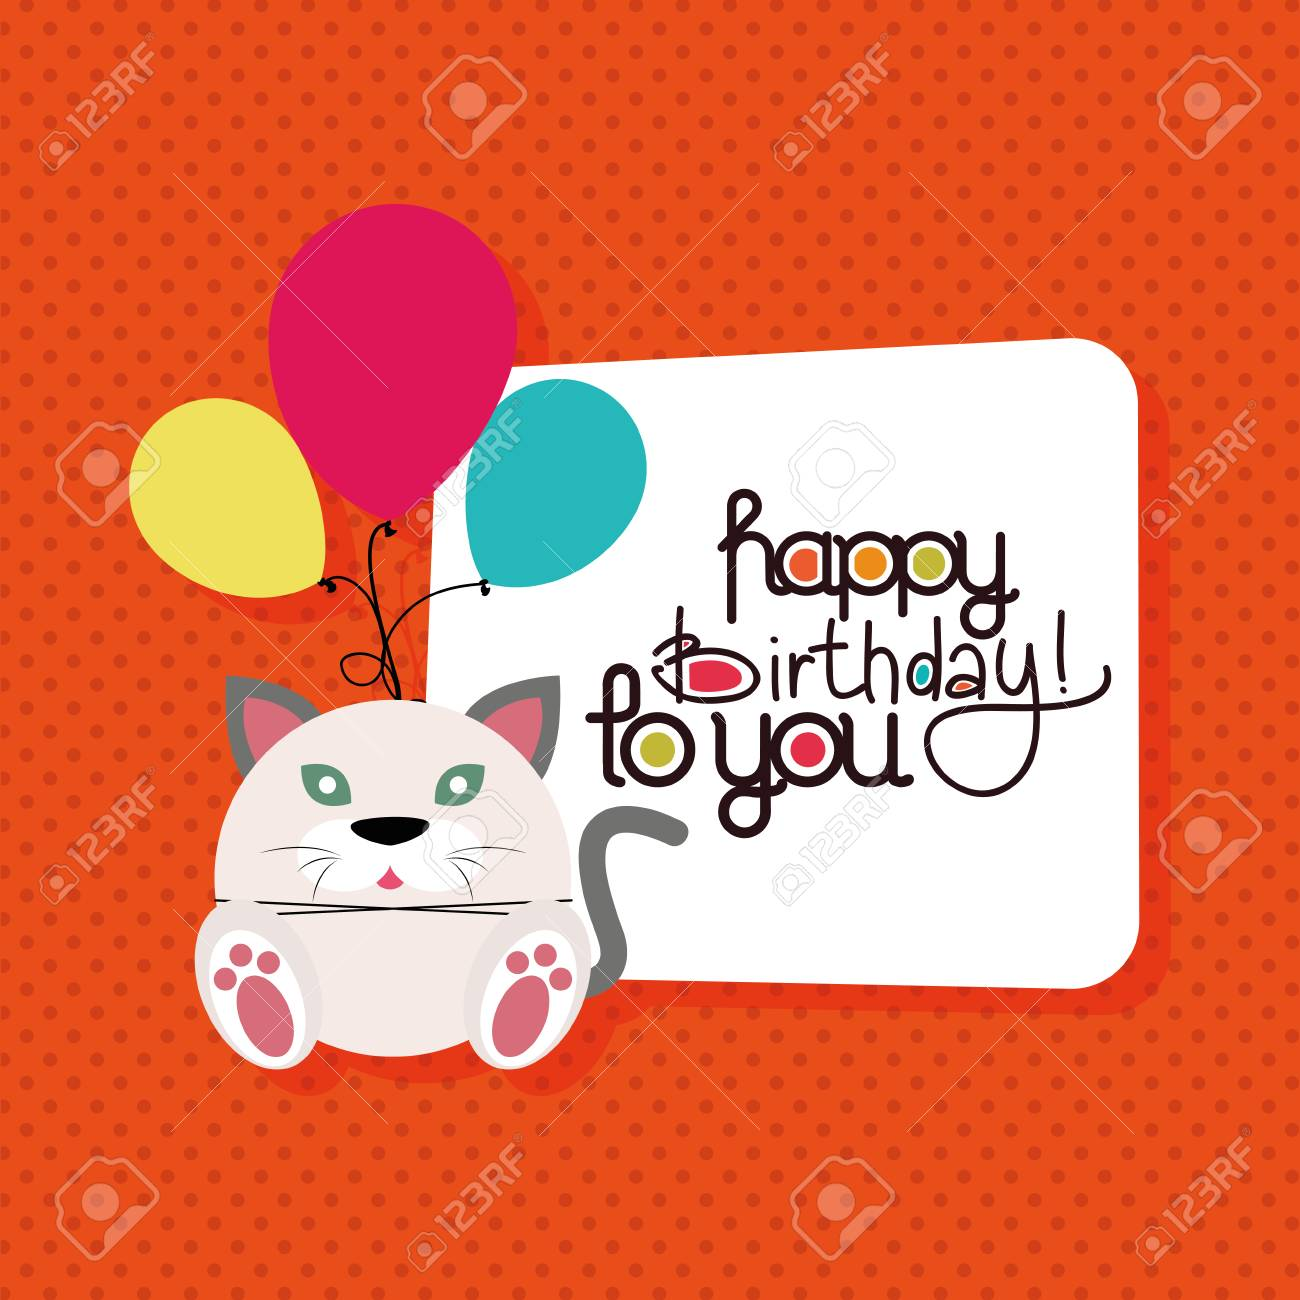 Textured Background With Text And An Animal For Birthdays Stock Vector